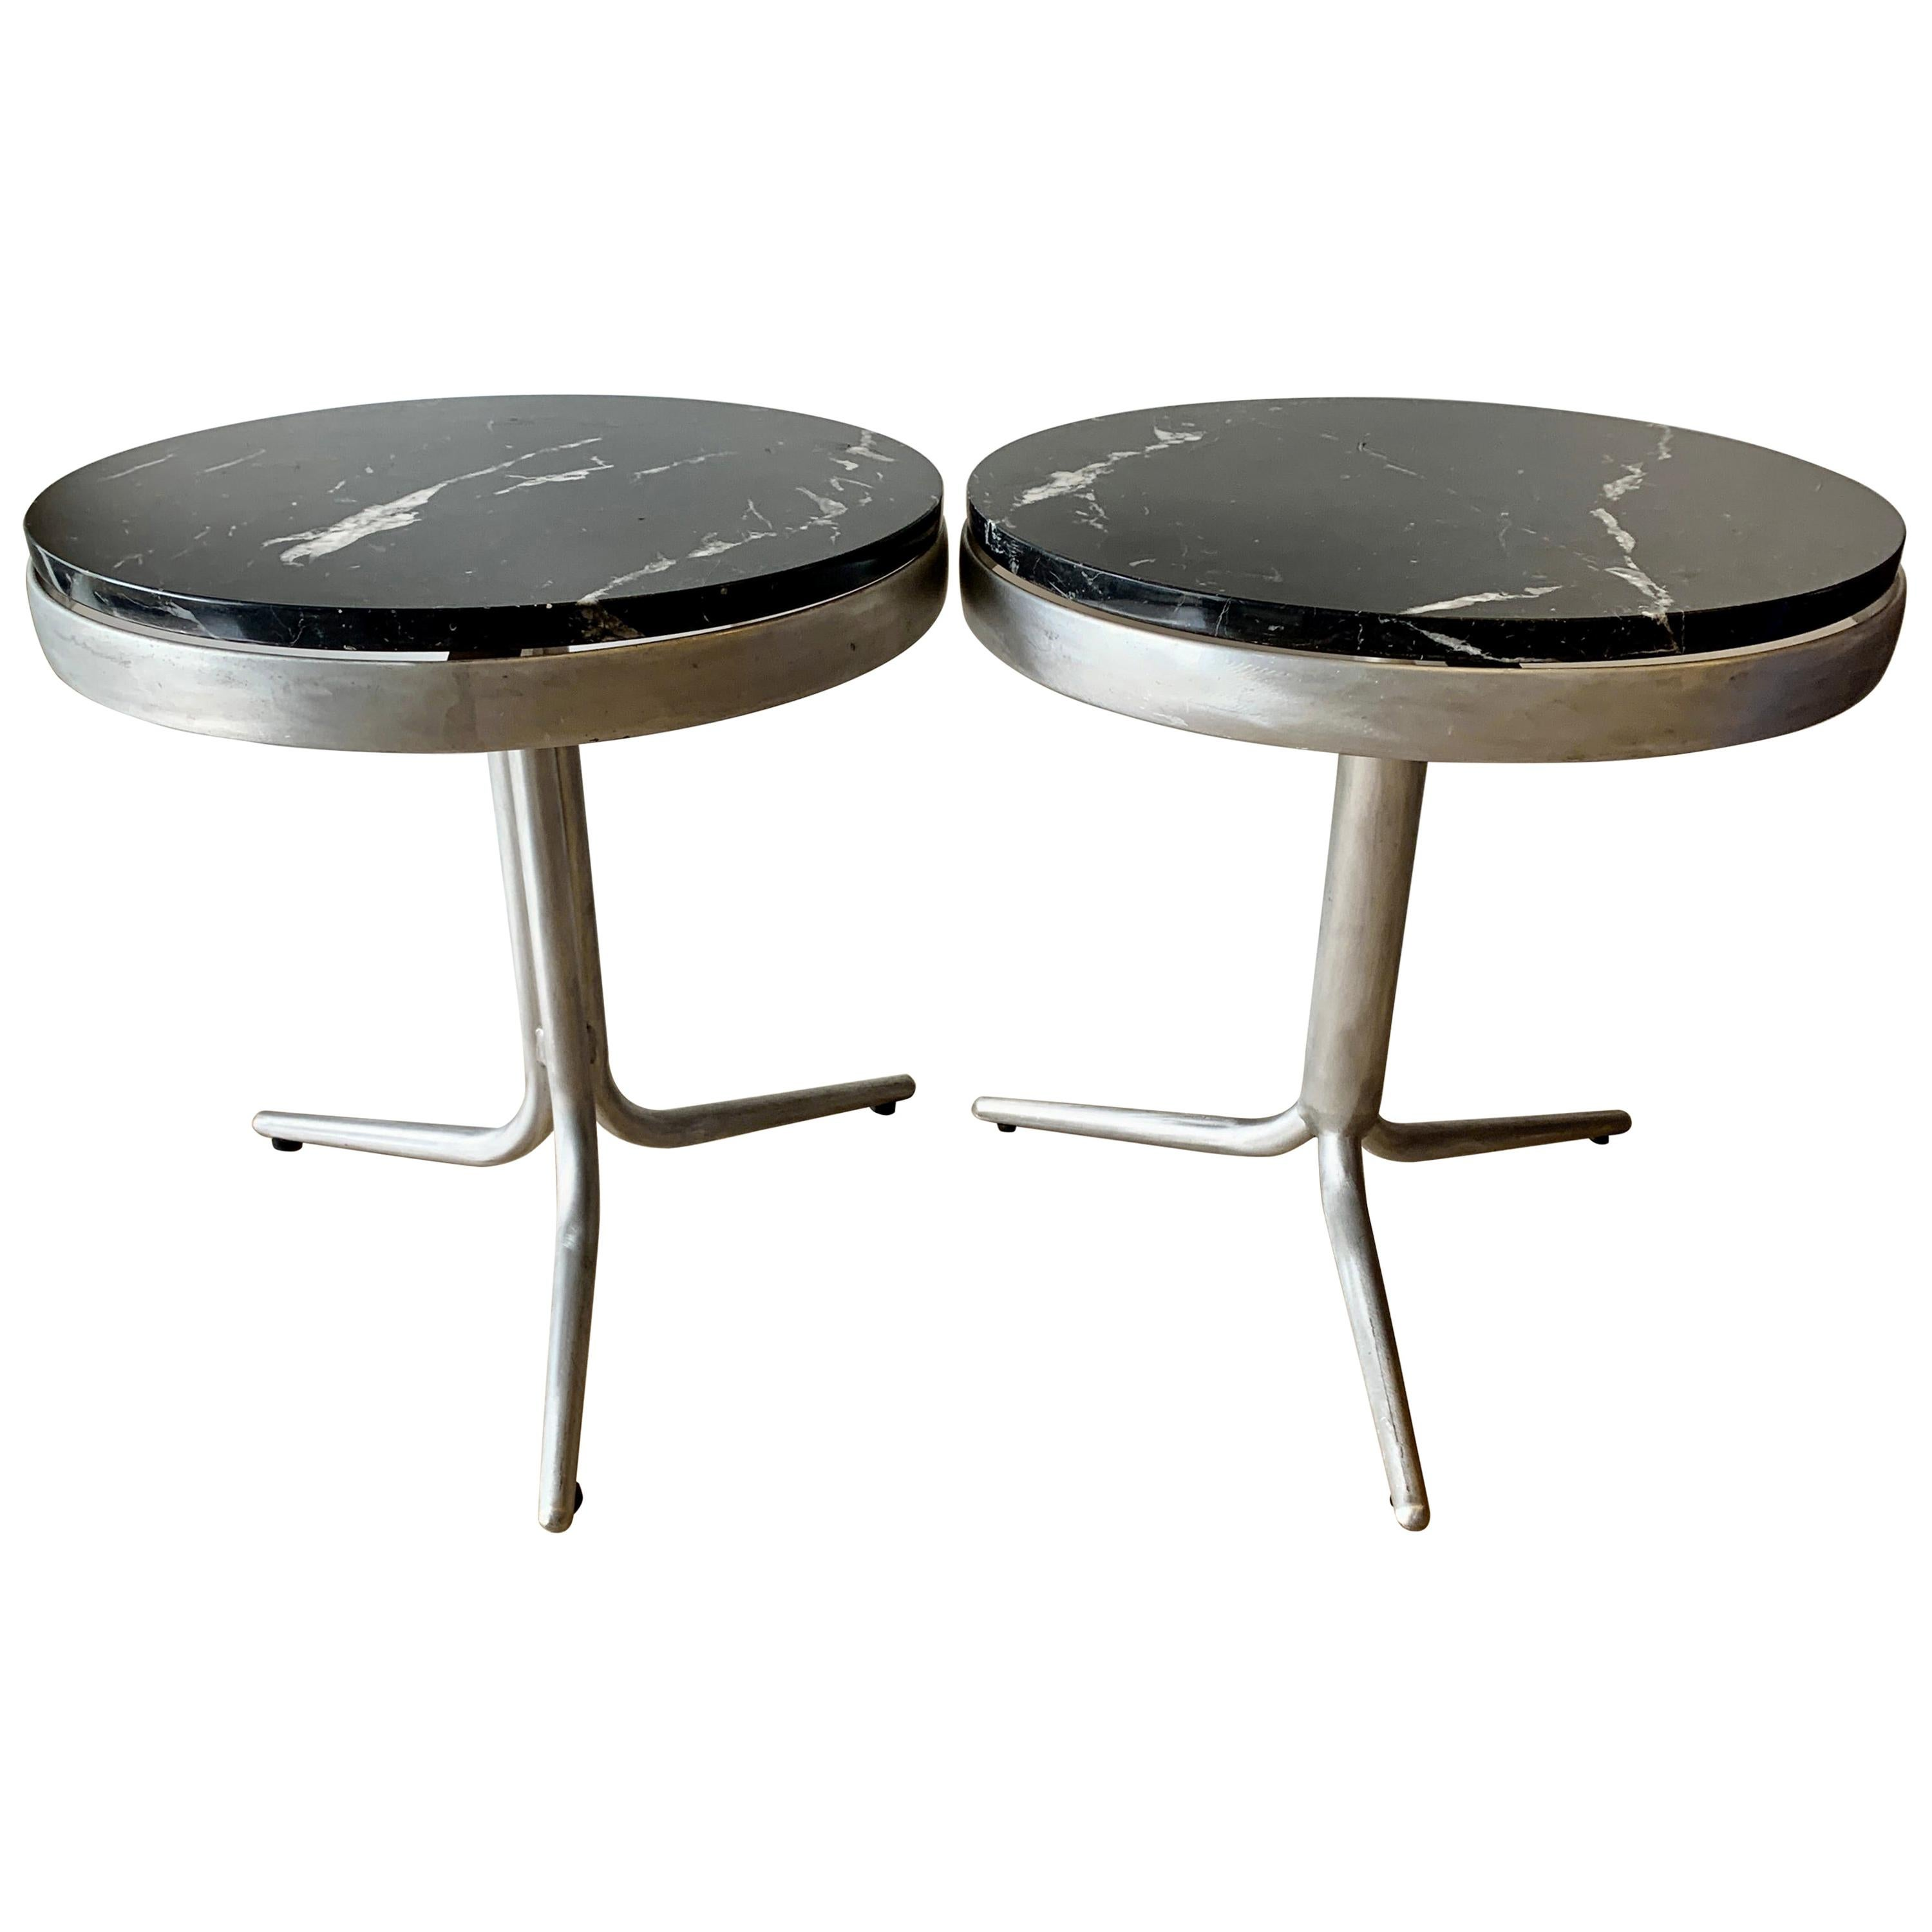 Pair of Italian Modernist Aluminum Side Tables with Marble Tops